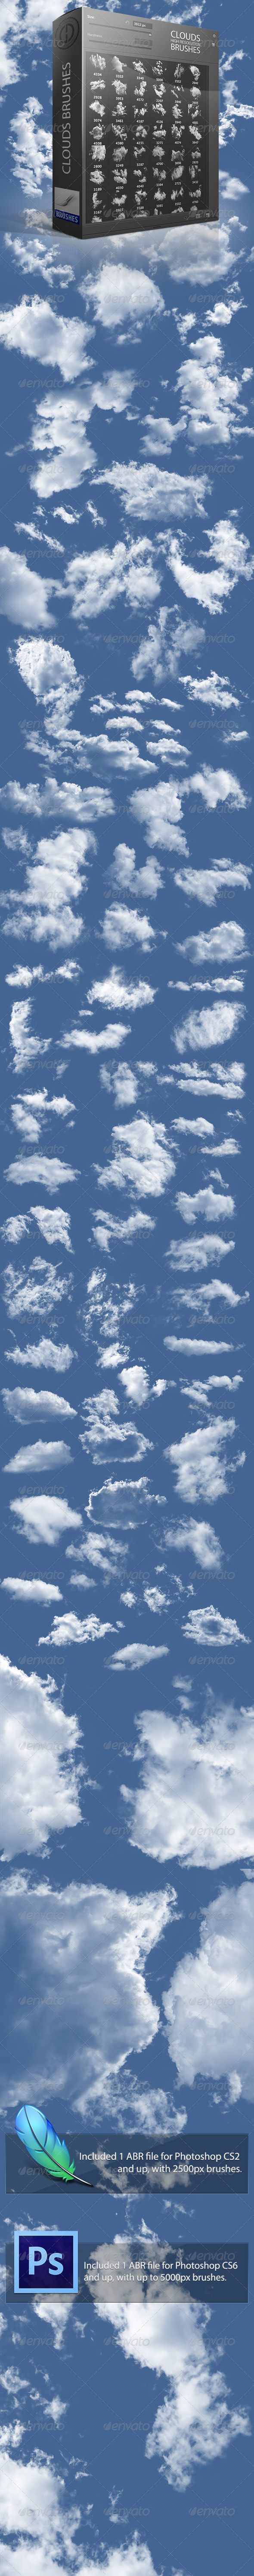 GraphicRiver Clouds Brushes 2 0 4032042